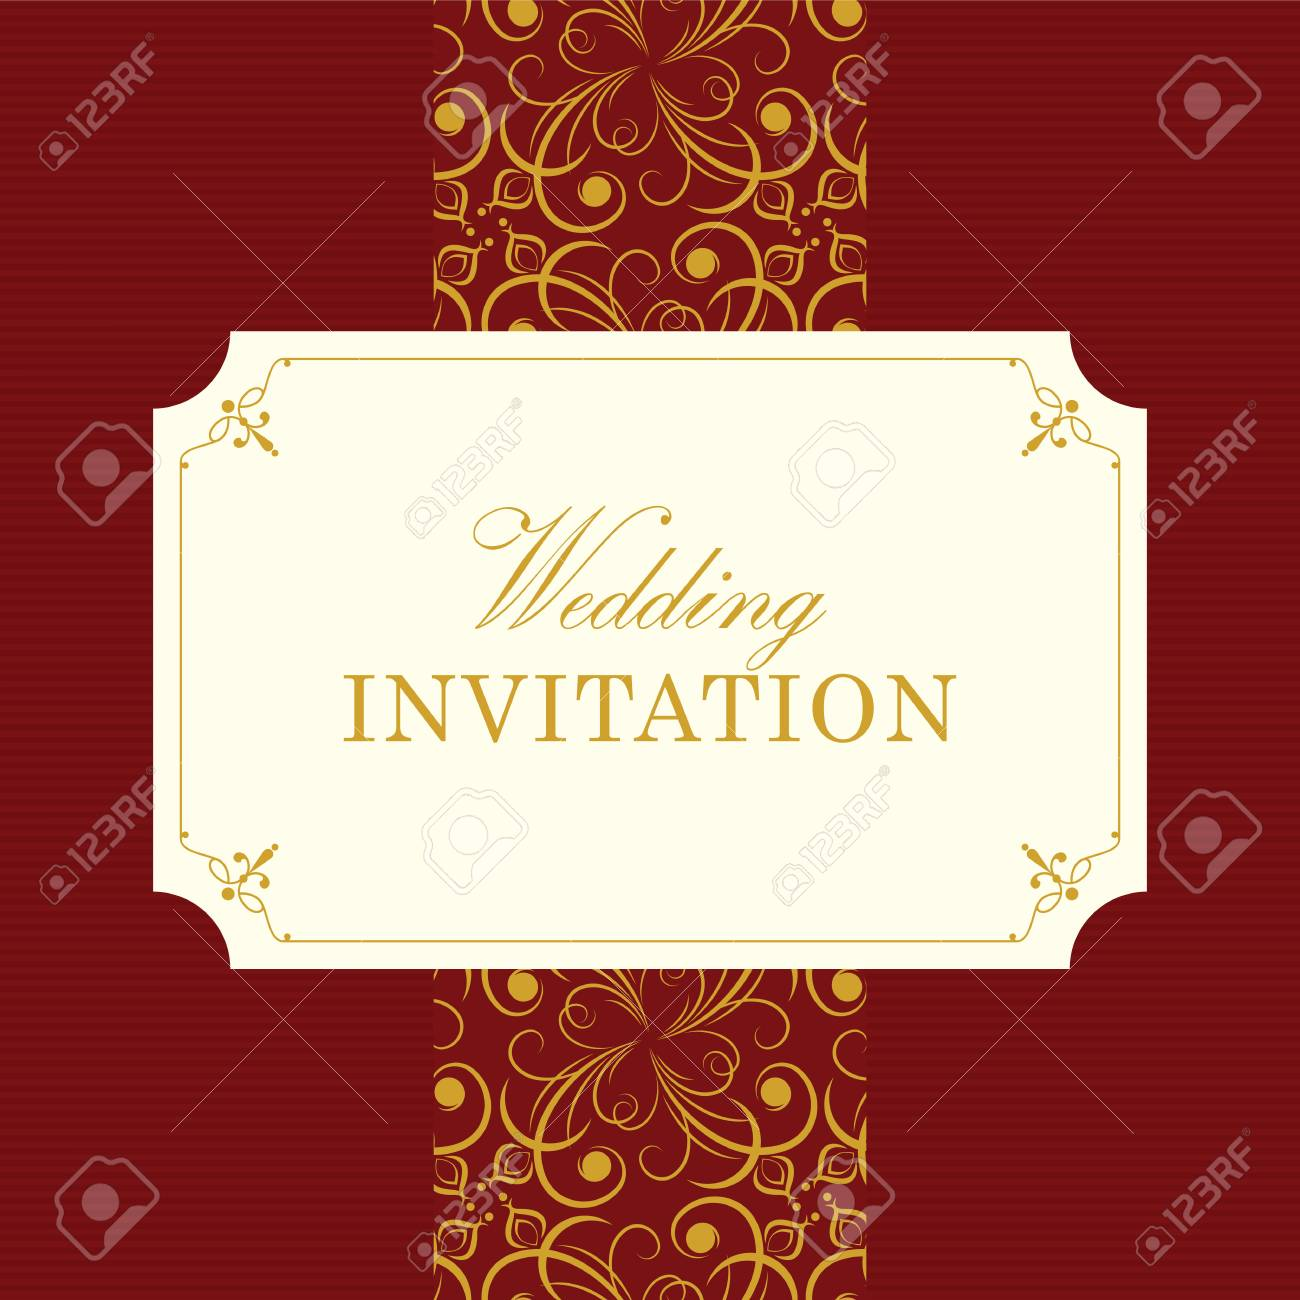 Wedding Card Or Invitation With Floral Ornament Background. Perfect ...